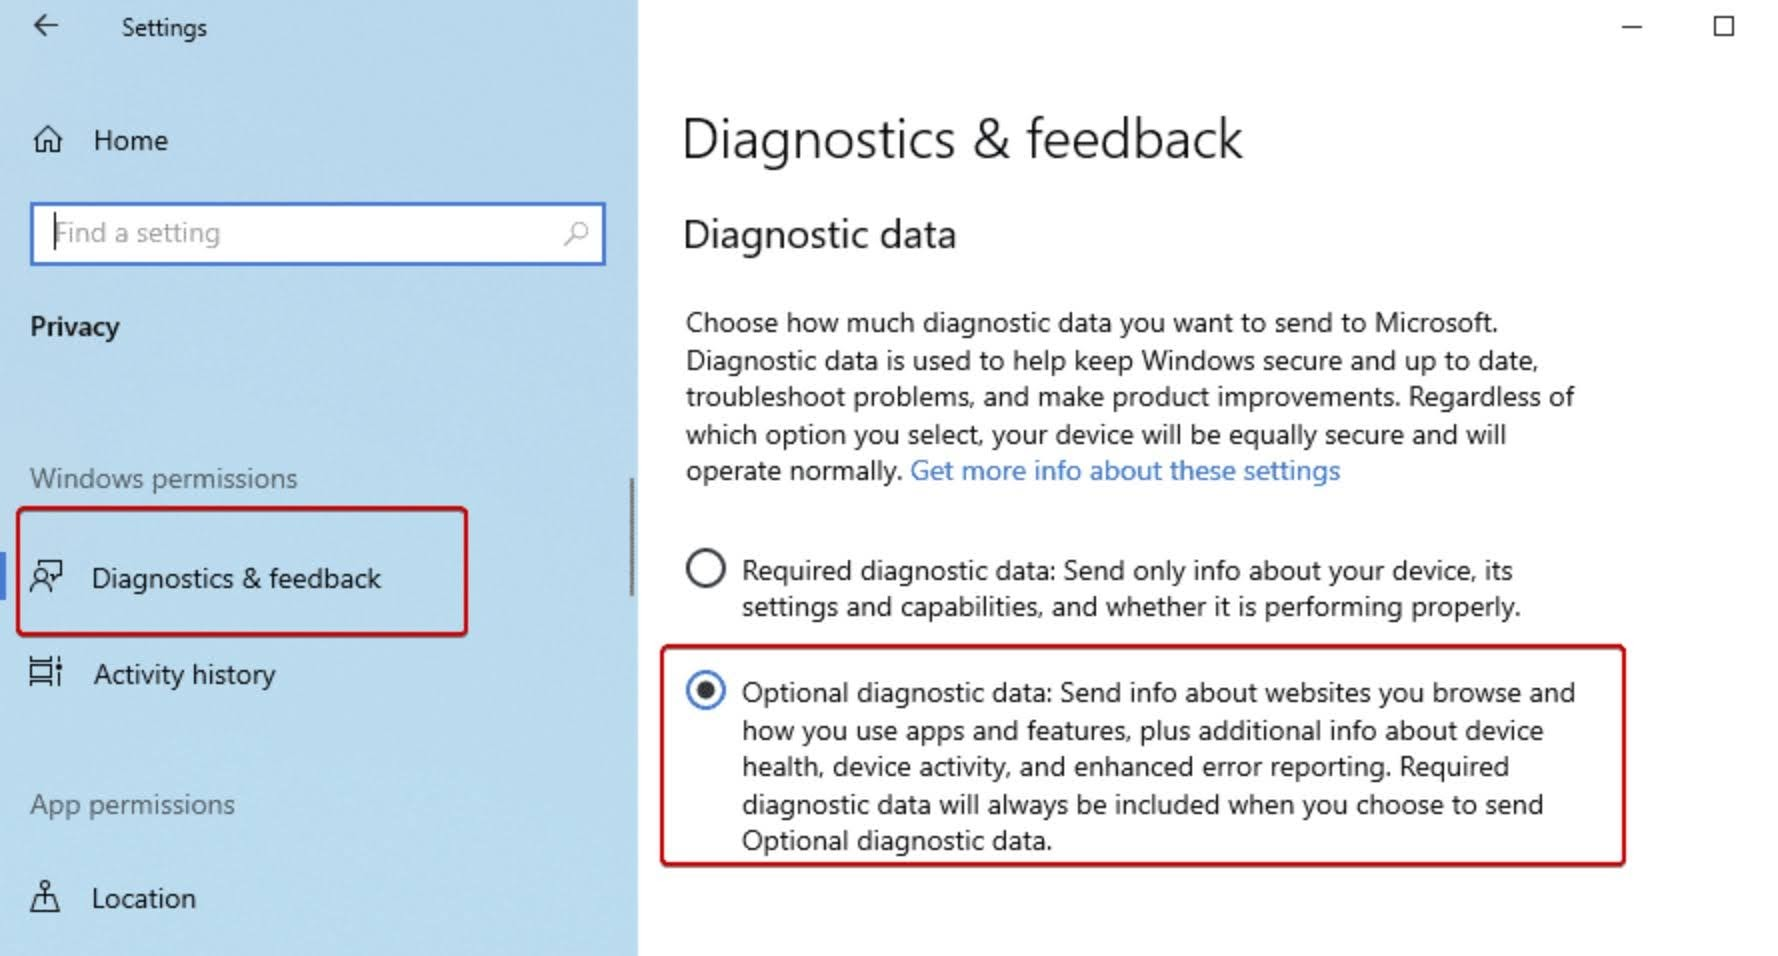 Select the radio button for Optional diagnostic data.